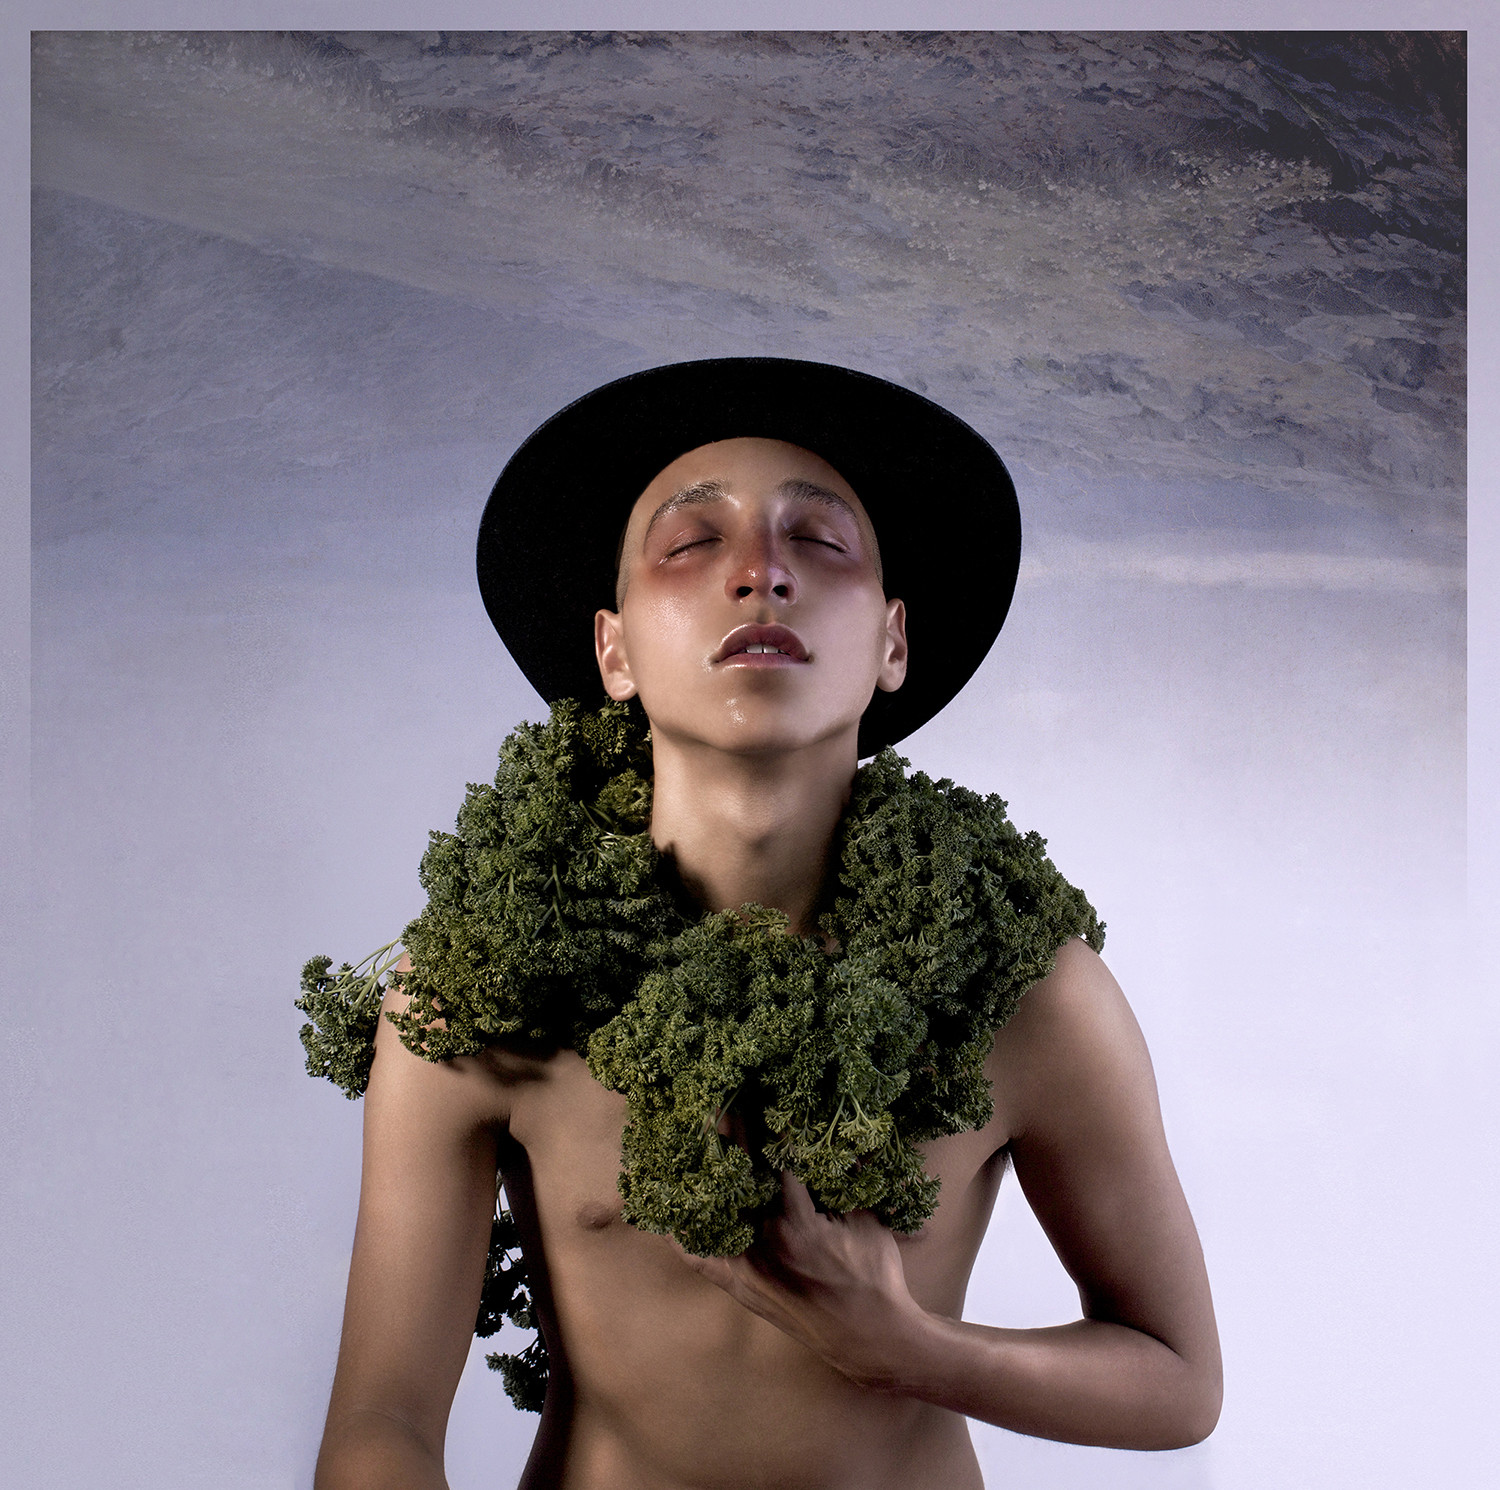 green vegetation wrapped on shoulders, portrait, photography